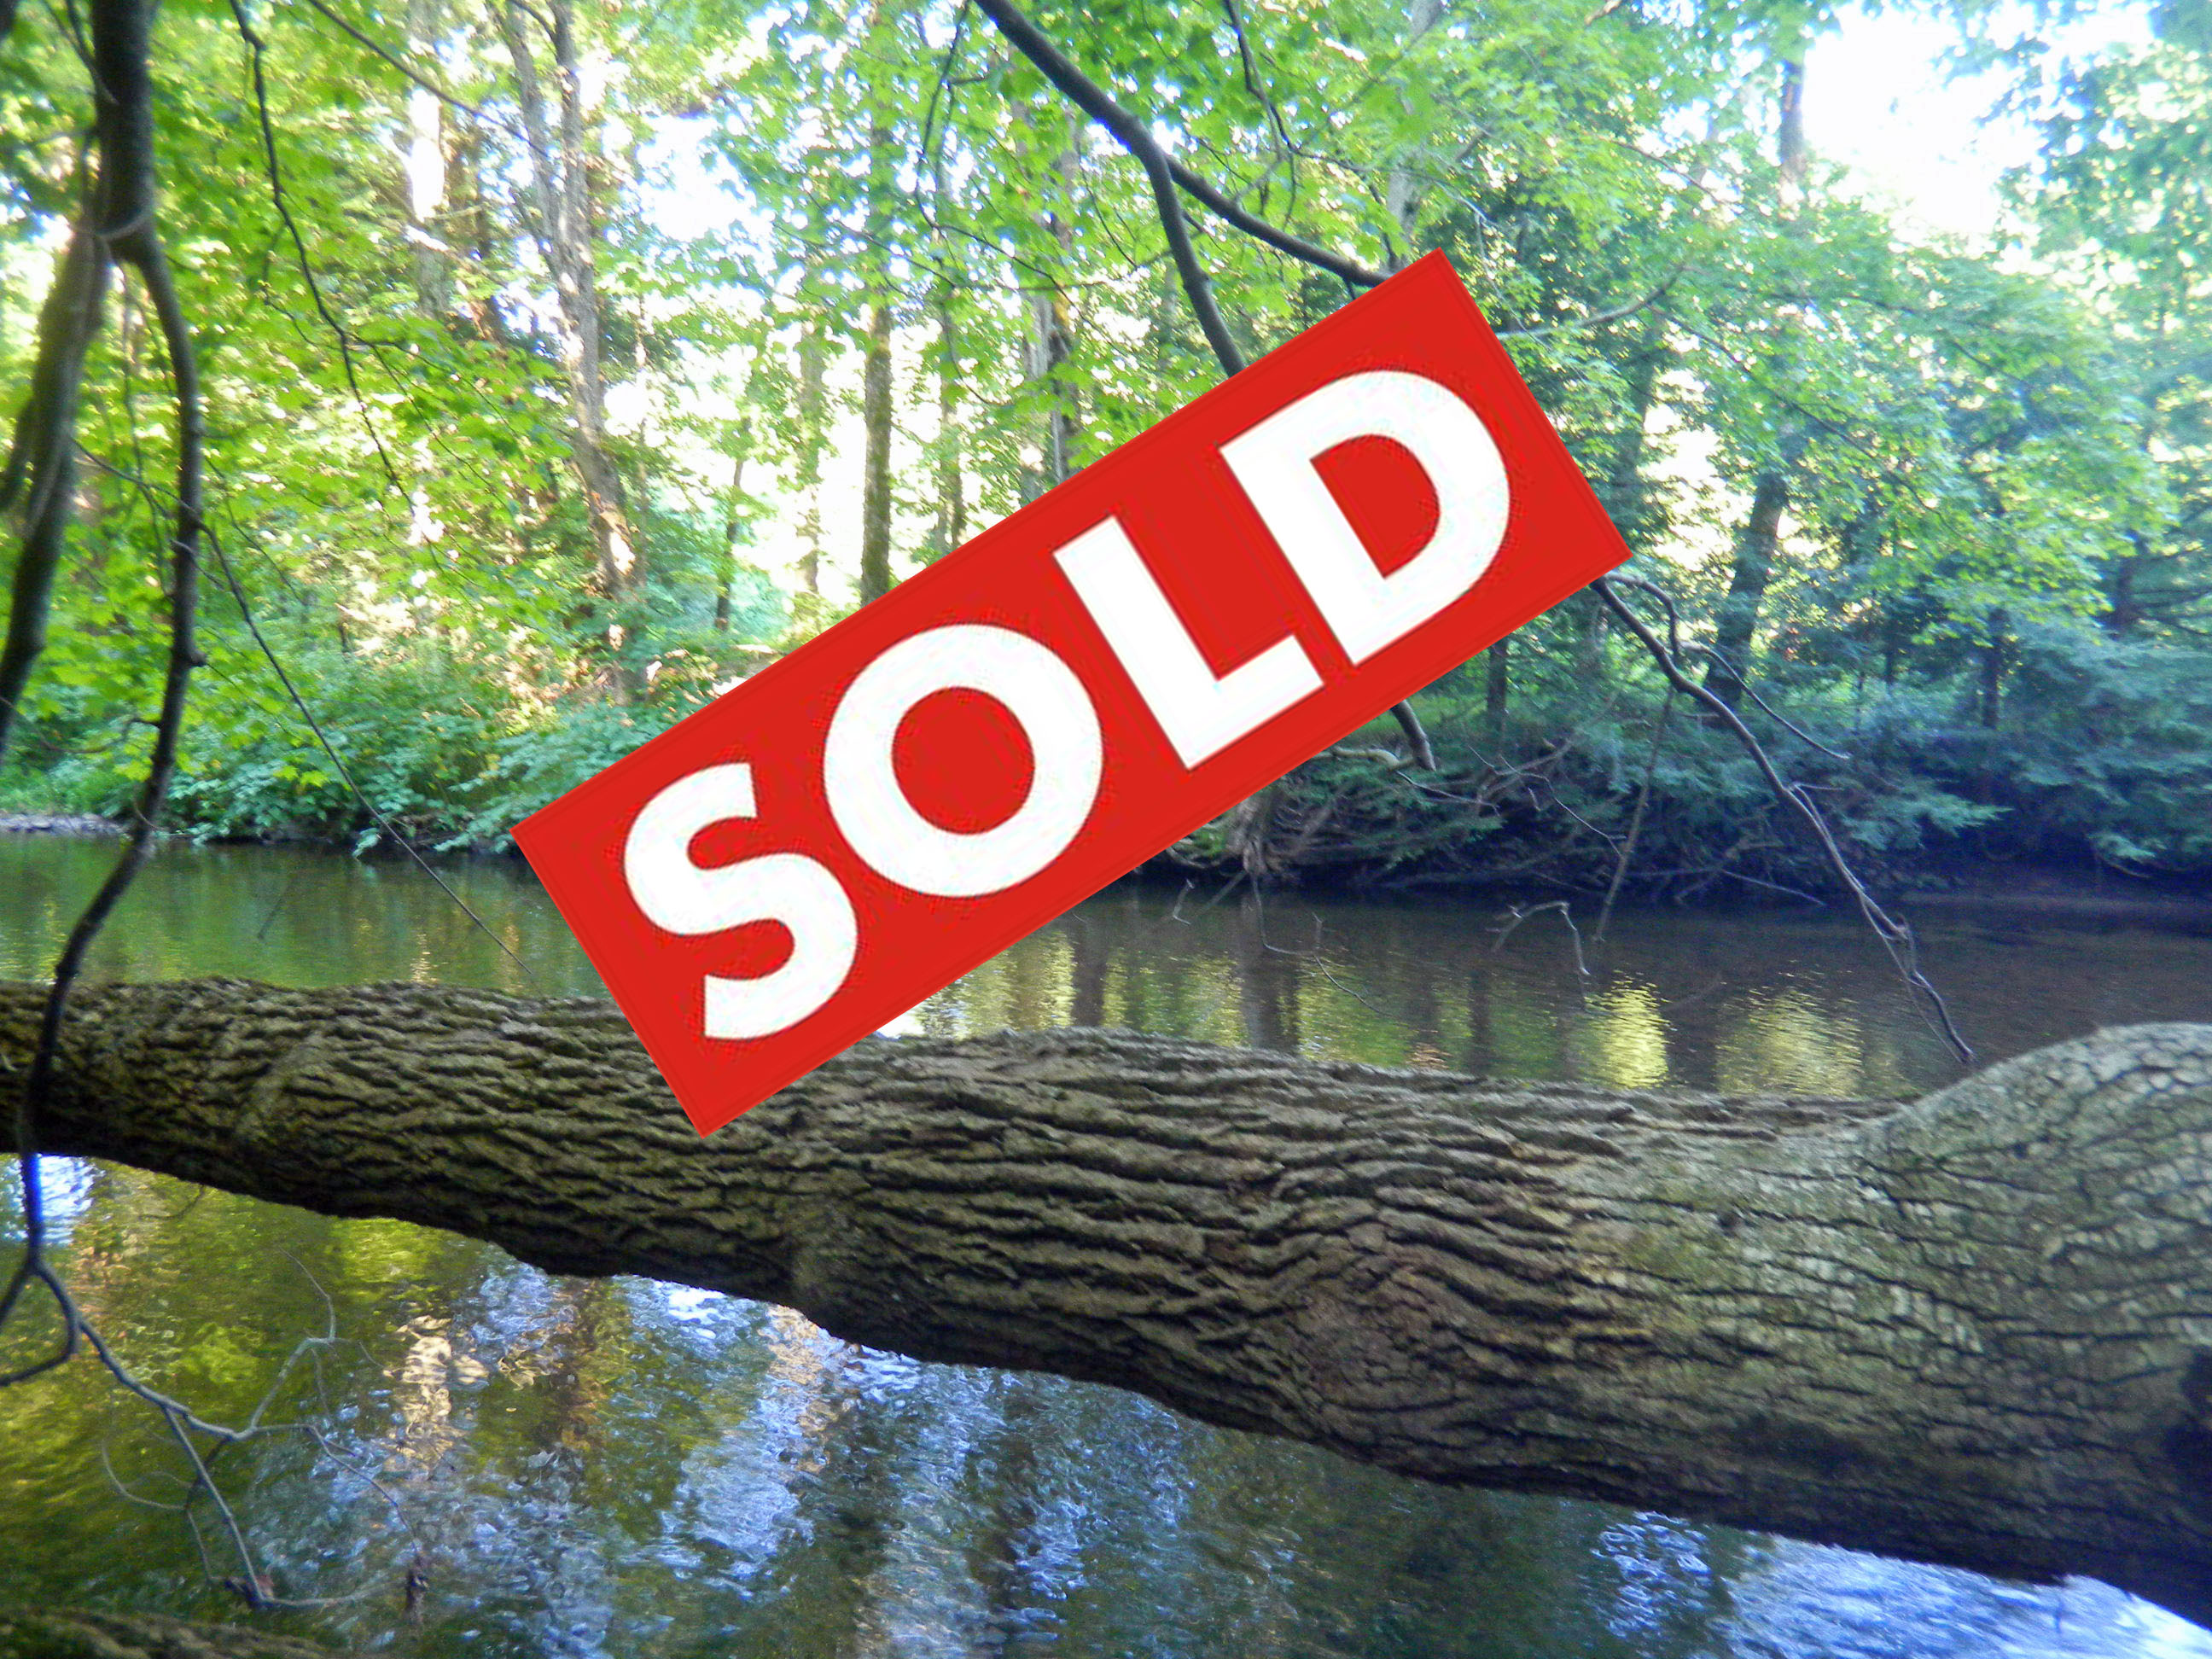 Huge 7.74 Acre Lot For Sale with Trout Stream, Pocono Mt. PA, RVs OK! – Only $10,900!